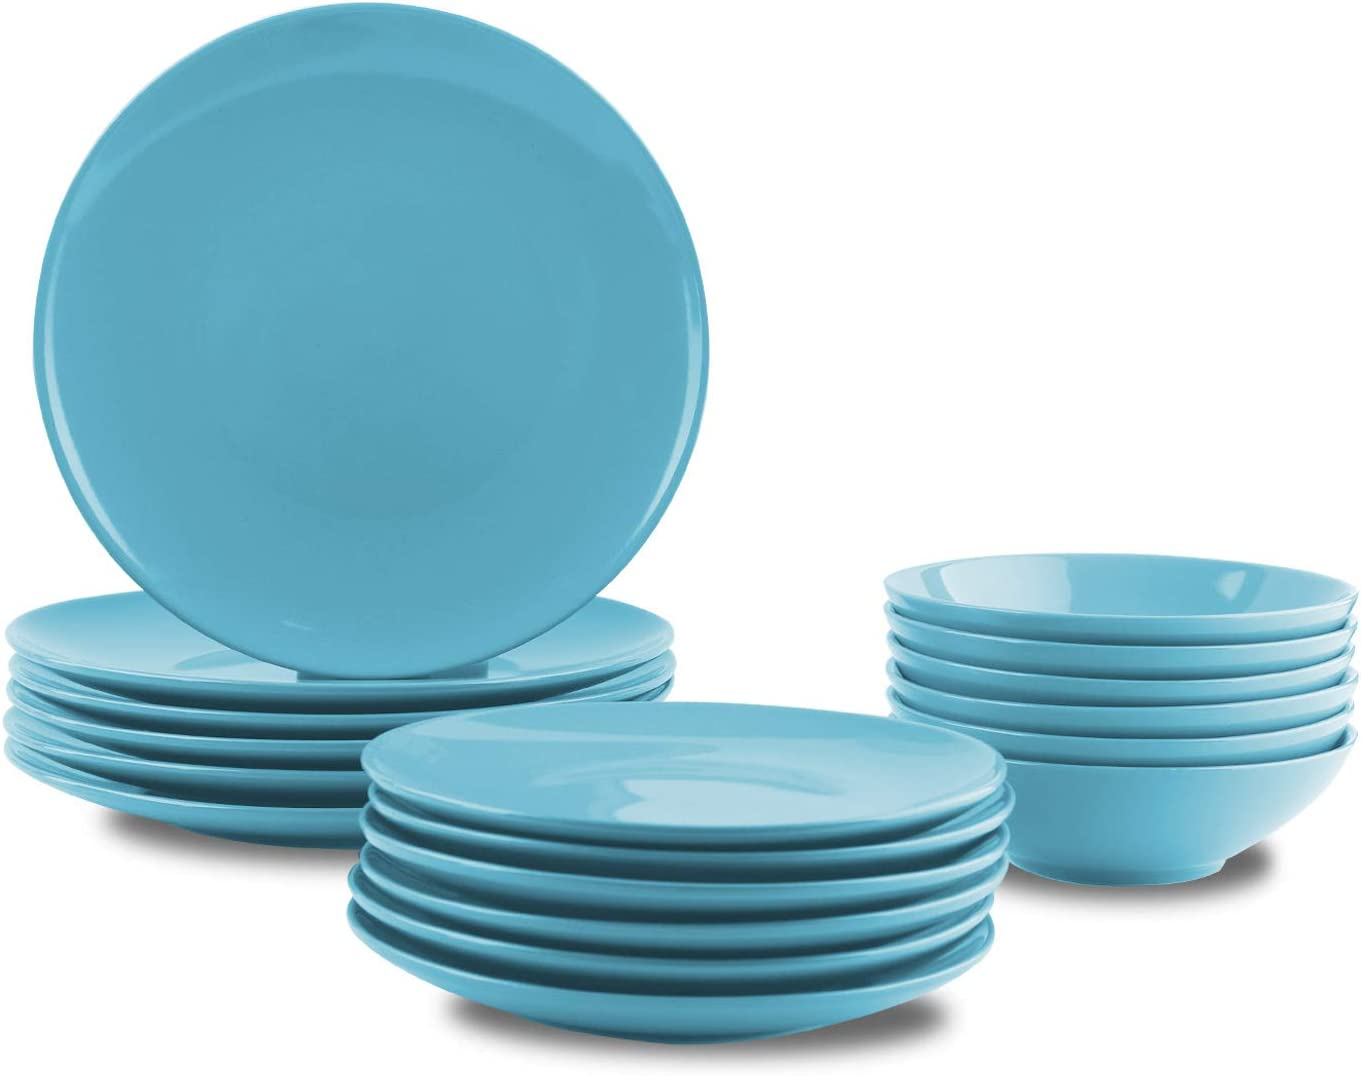 AmazonBasics 18-Piece Stoneware Dinnerware Set - Sky Blue, Service for 6